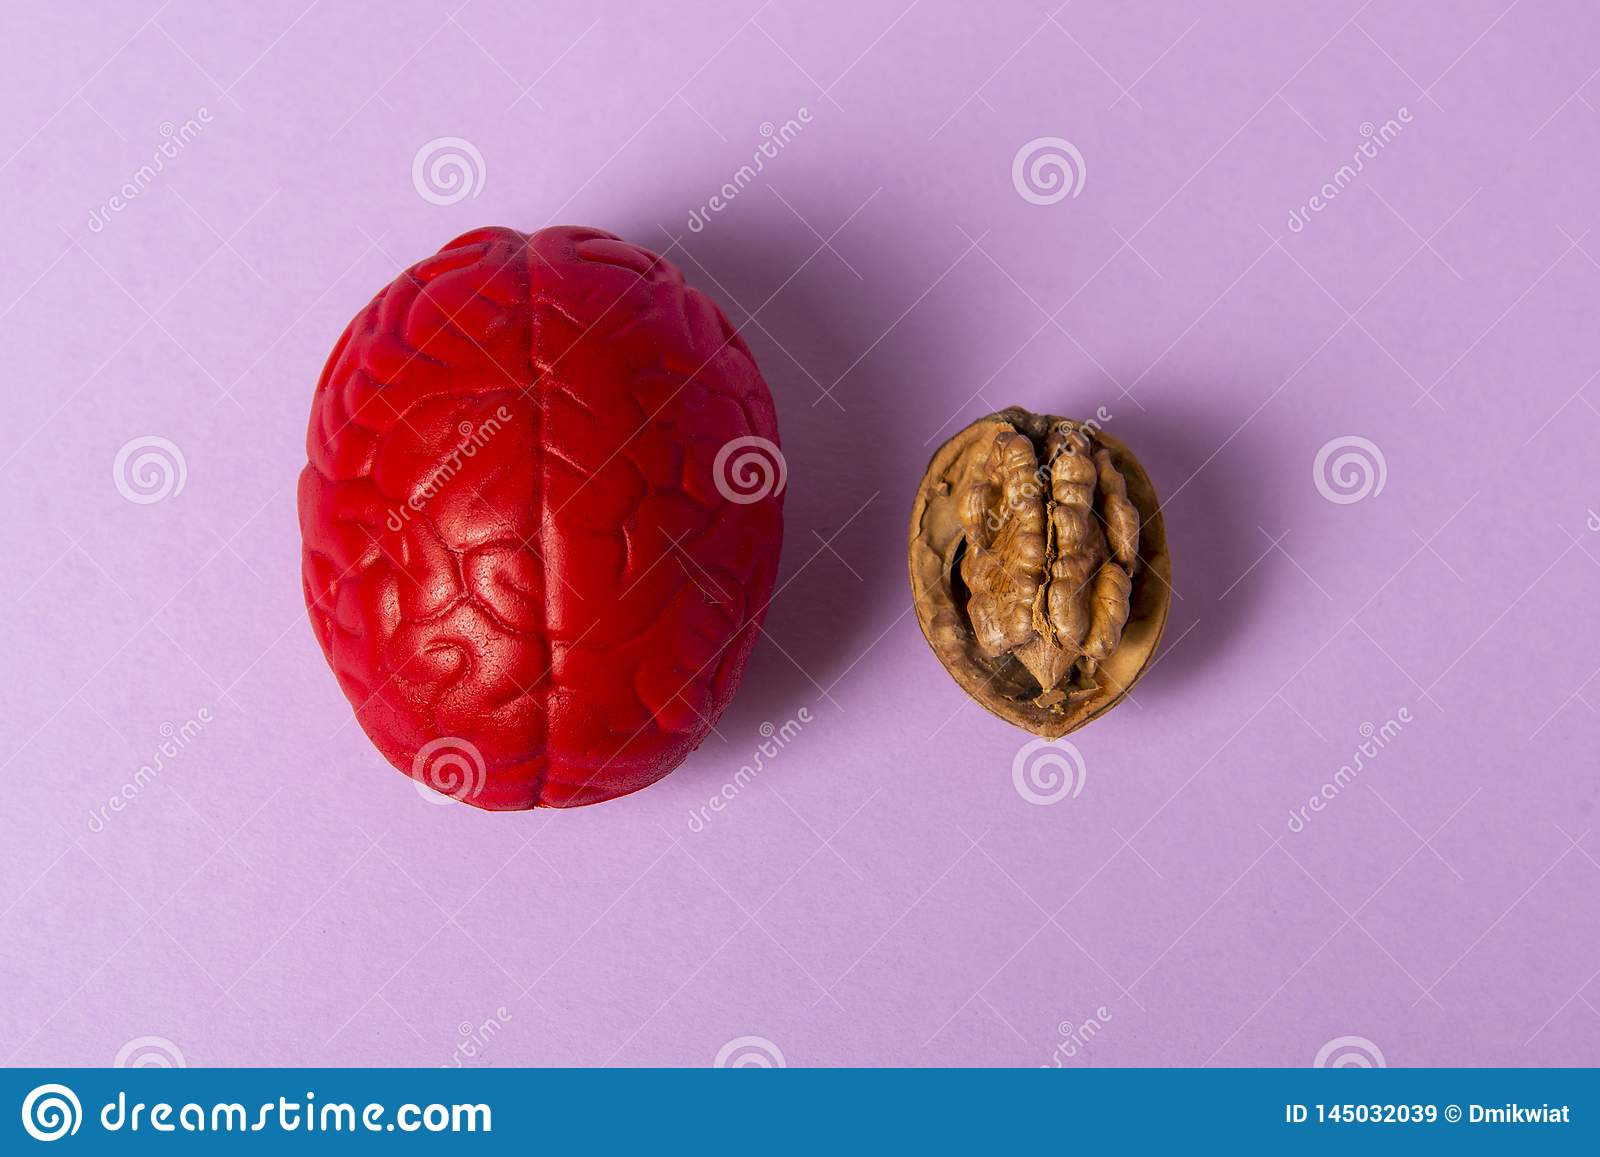 Walnut and brain mock up on pink background. The shape of the human brain is similar to walnut kernels. It symbolizes the